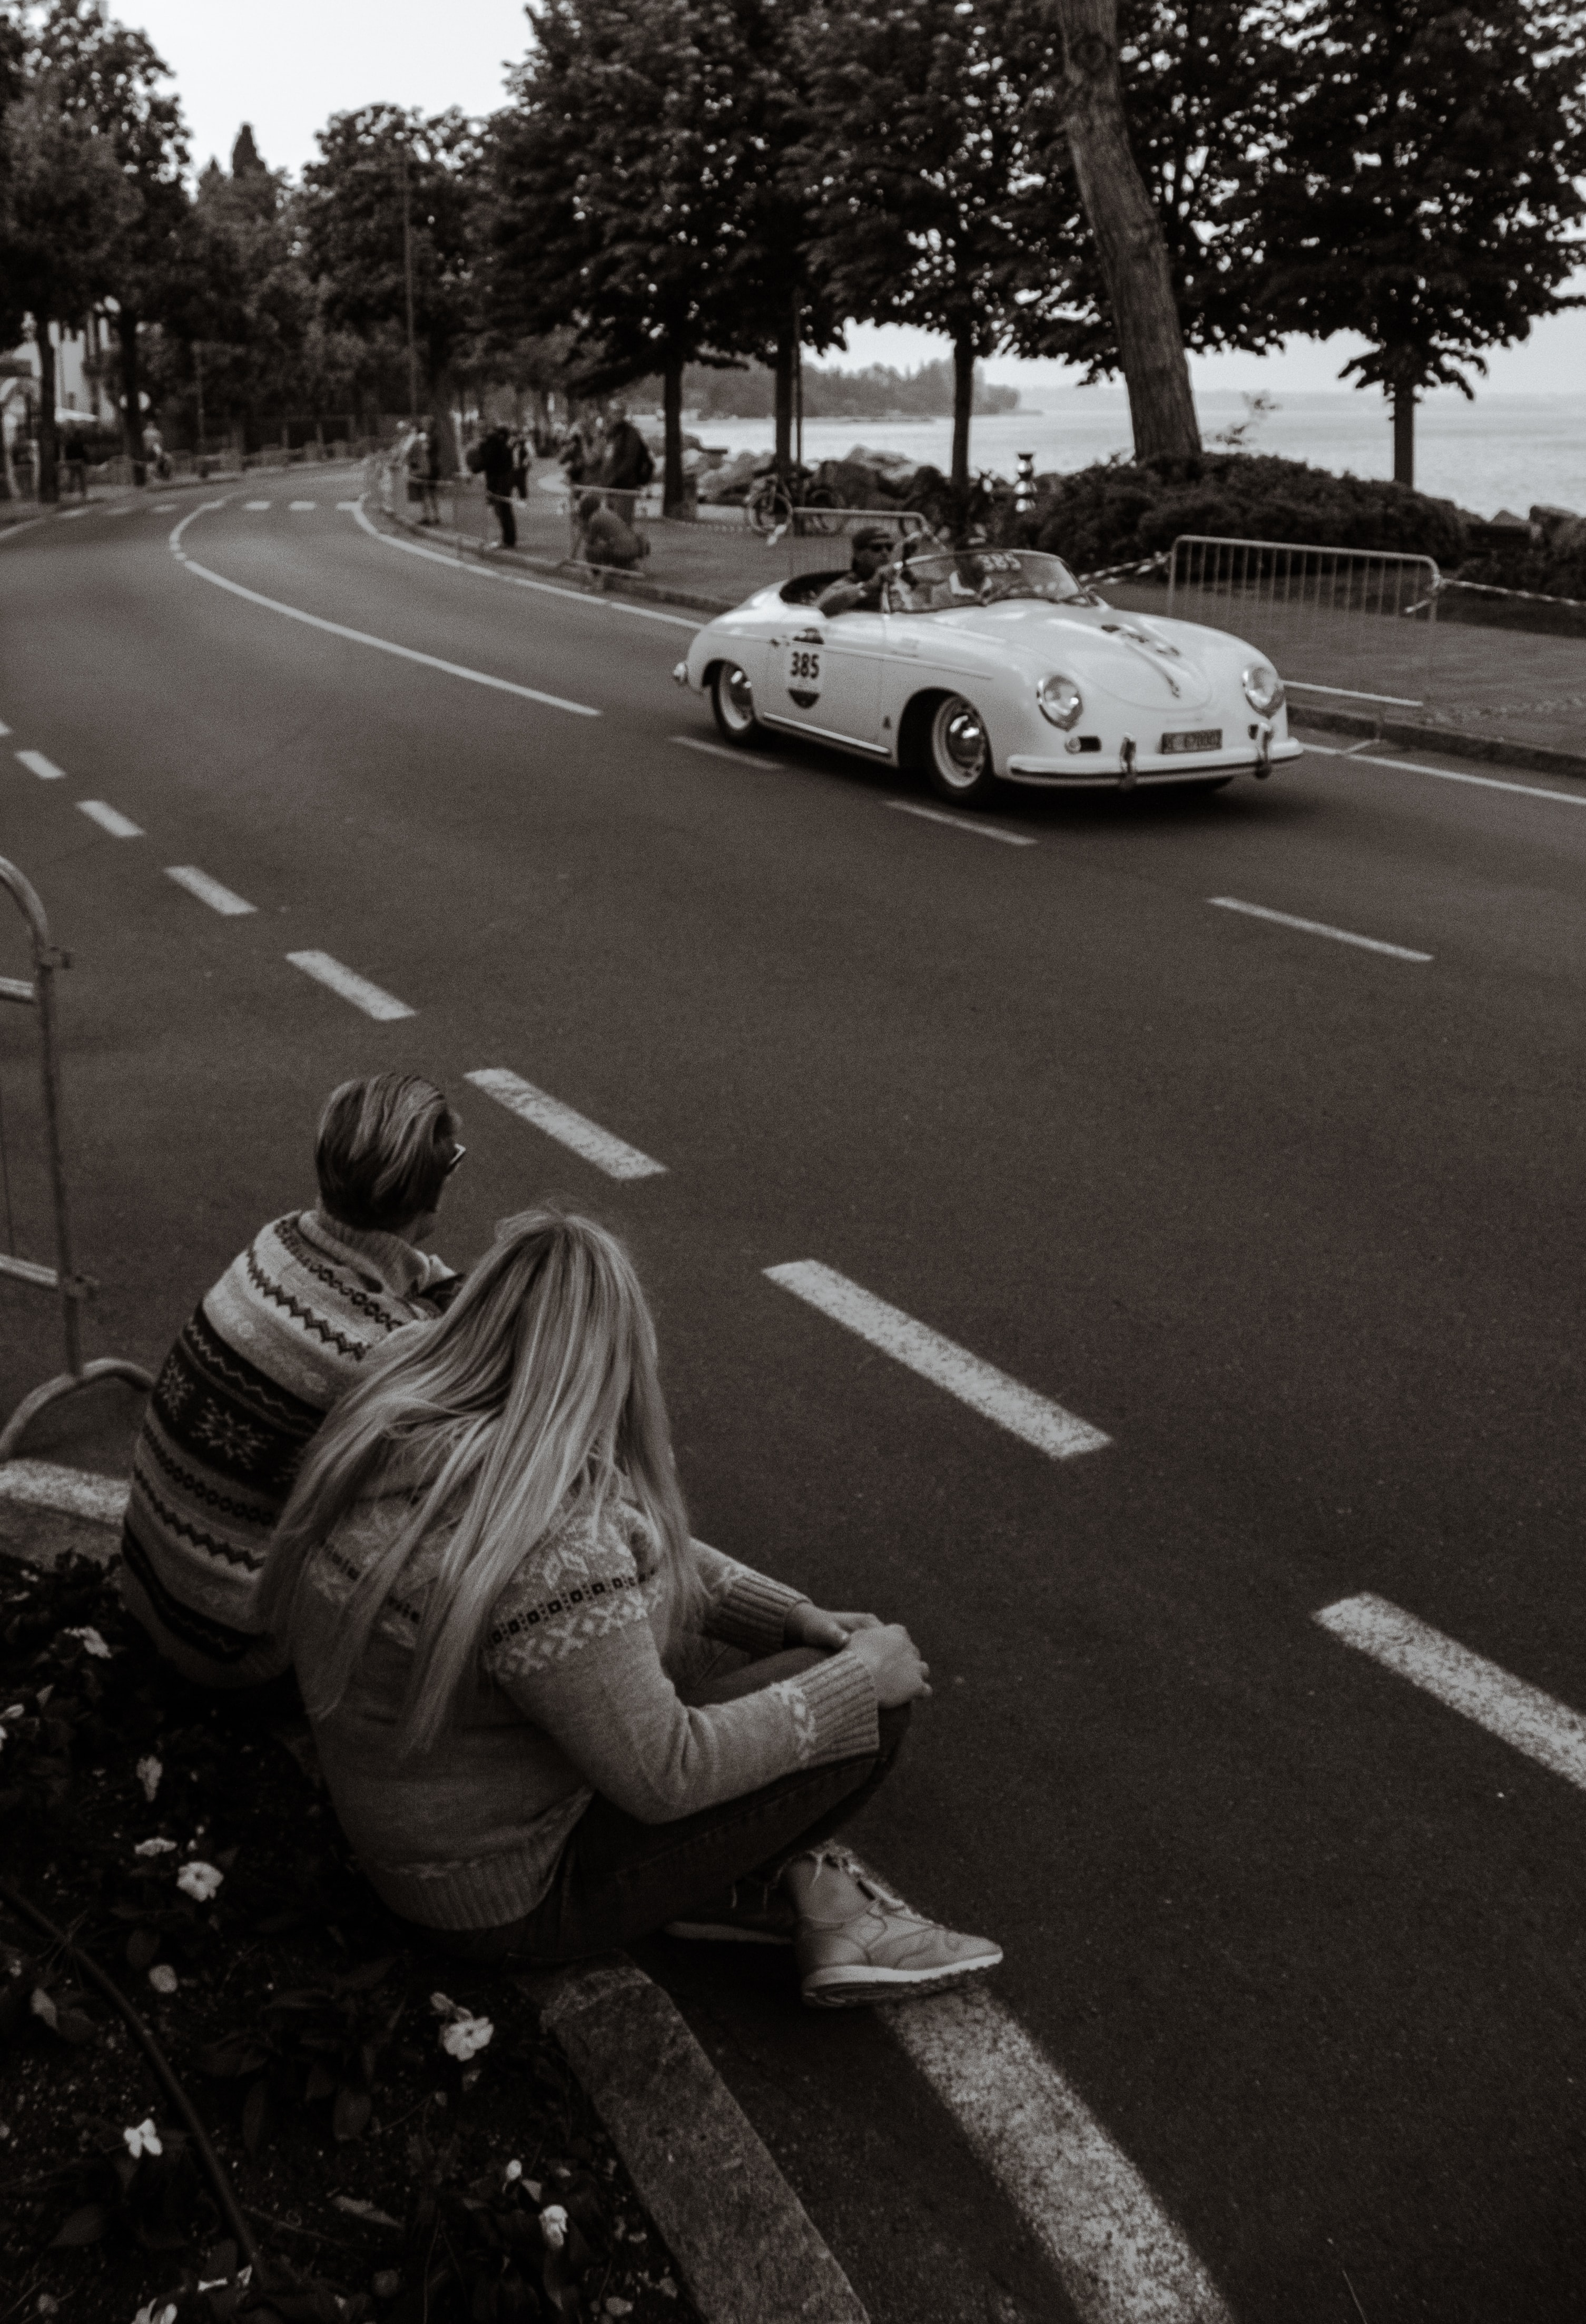 grayscale photo of man and woman sitting on street facing white coupe